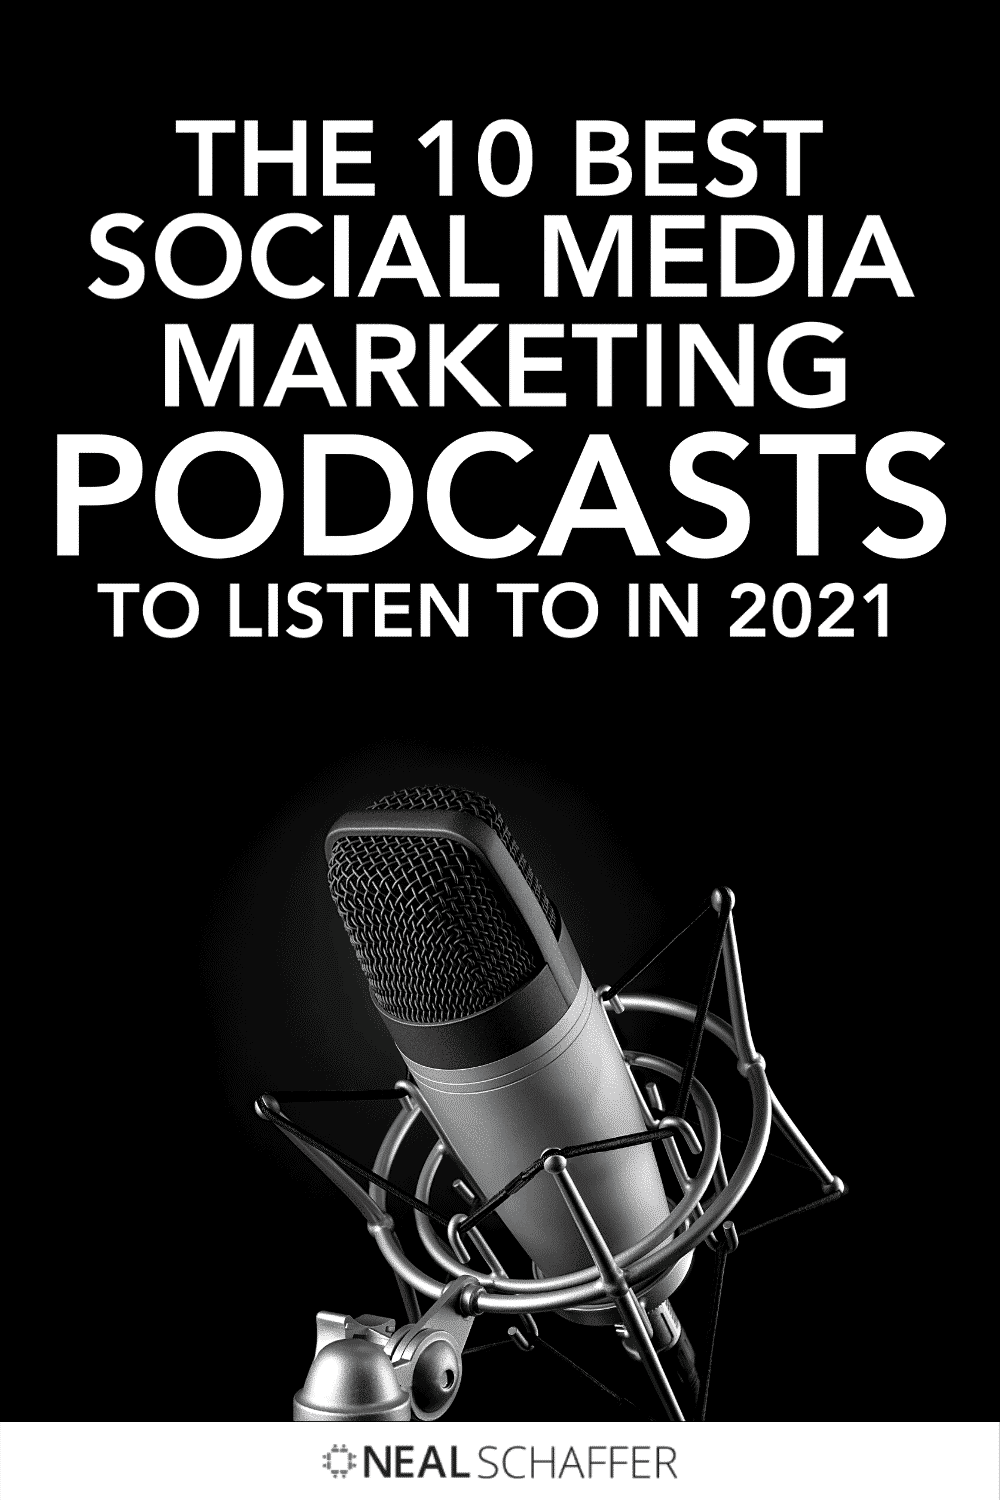 Looking for the best social media marketing podcasts to listen to in 2021 to give you or your company the competitive edge? Look no further!